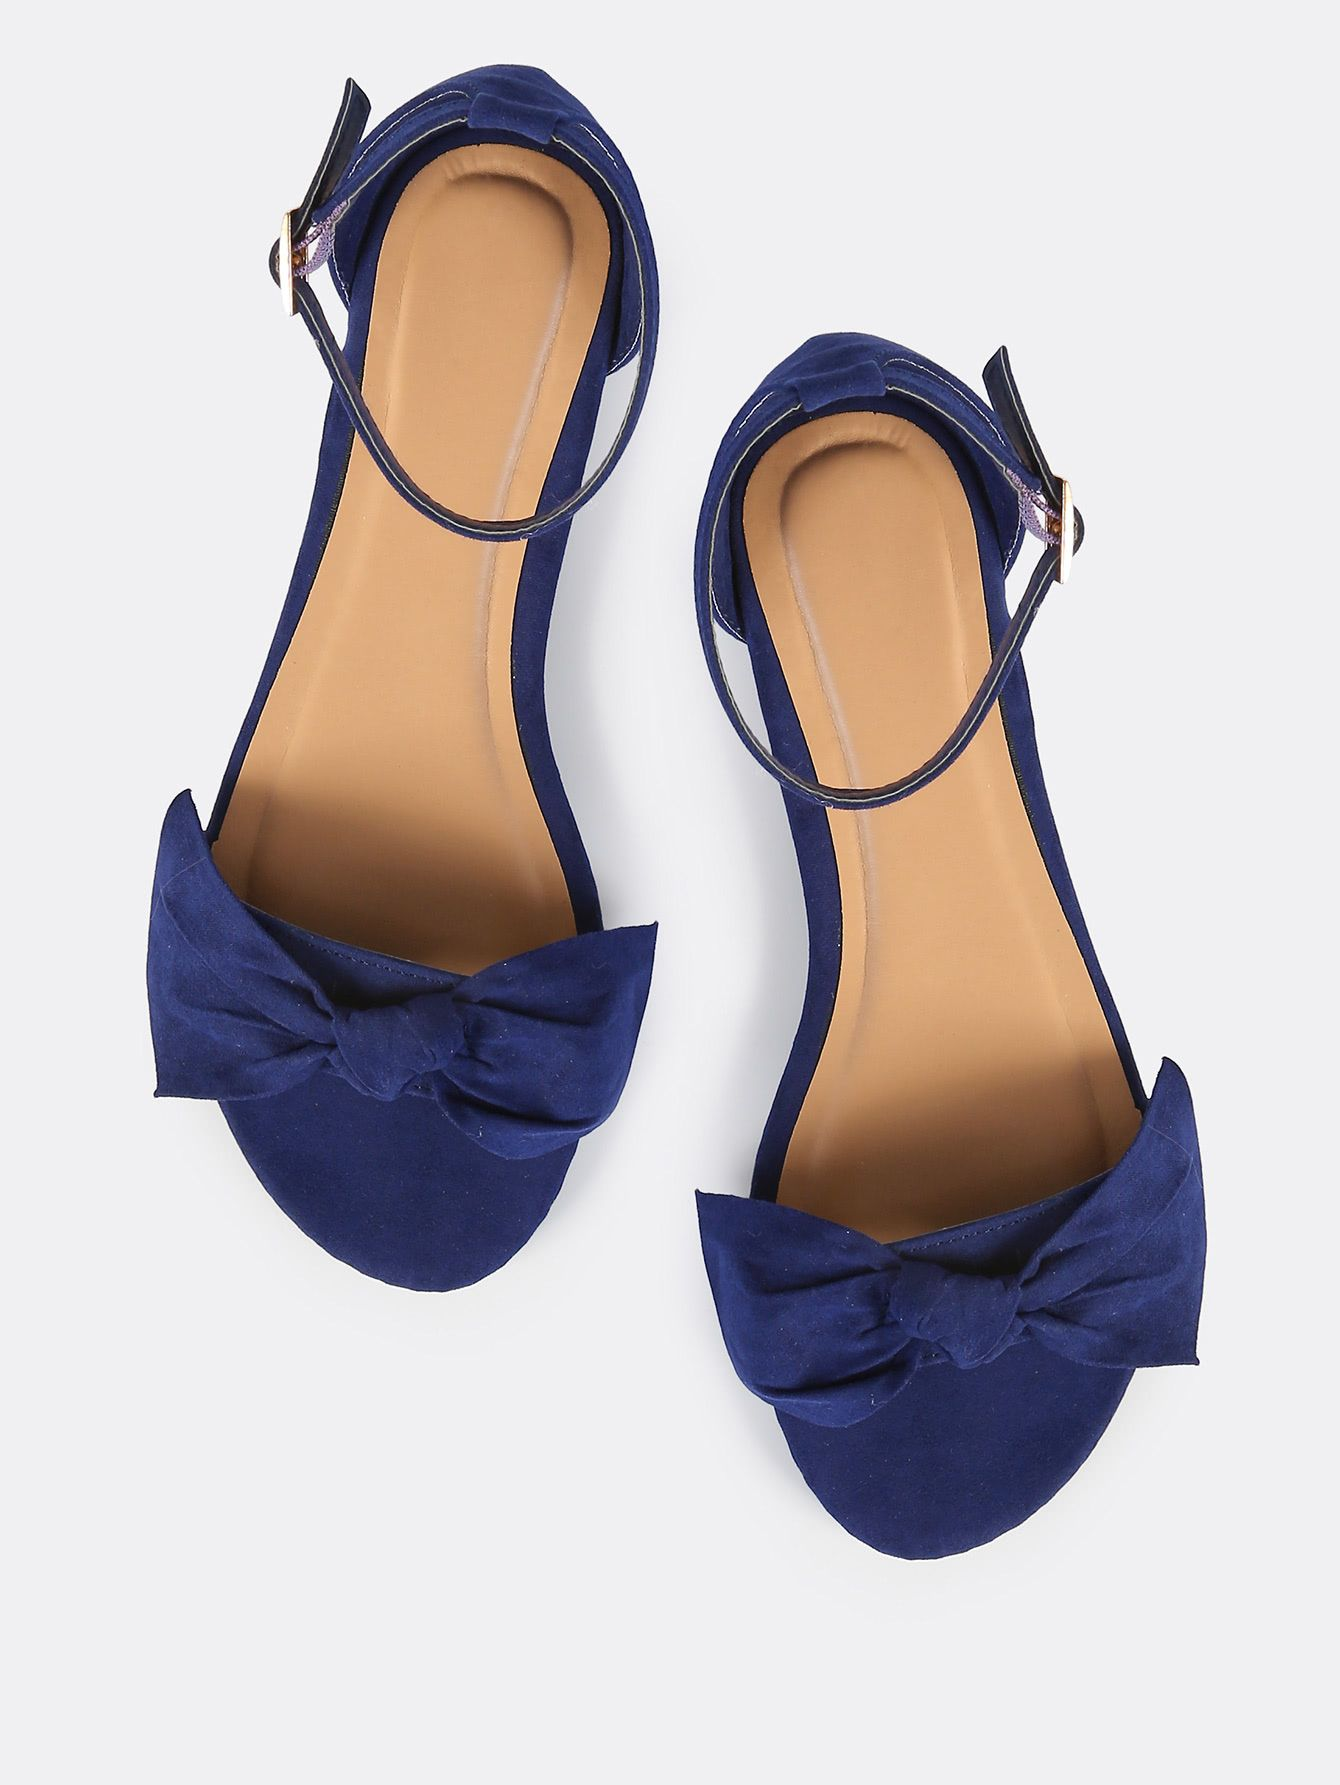 dc398afeb2d9 Shop Open Toe Bow Sandal Flats NAVY online. SheIn offers Open Toe Bow  Sandal Flats NAVY   more to fit your fashionable needs.